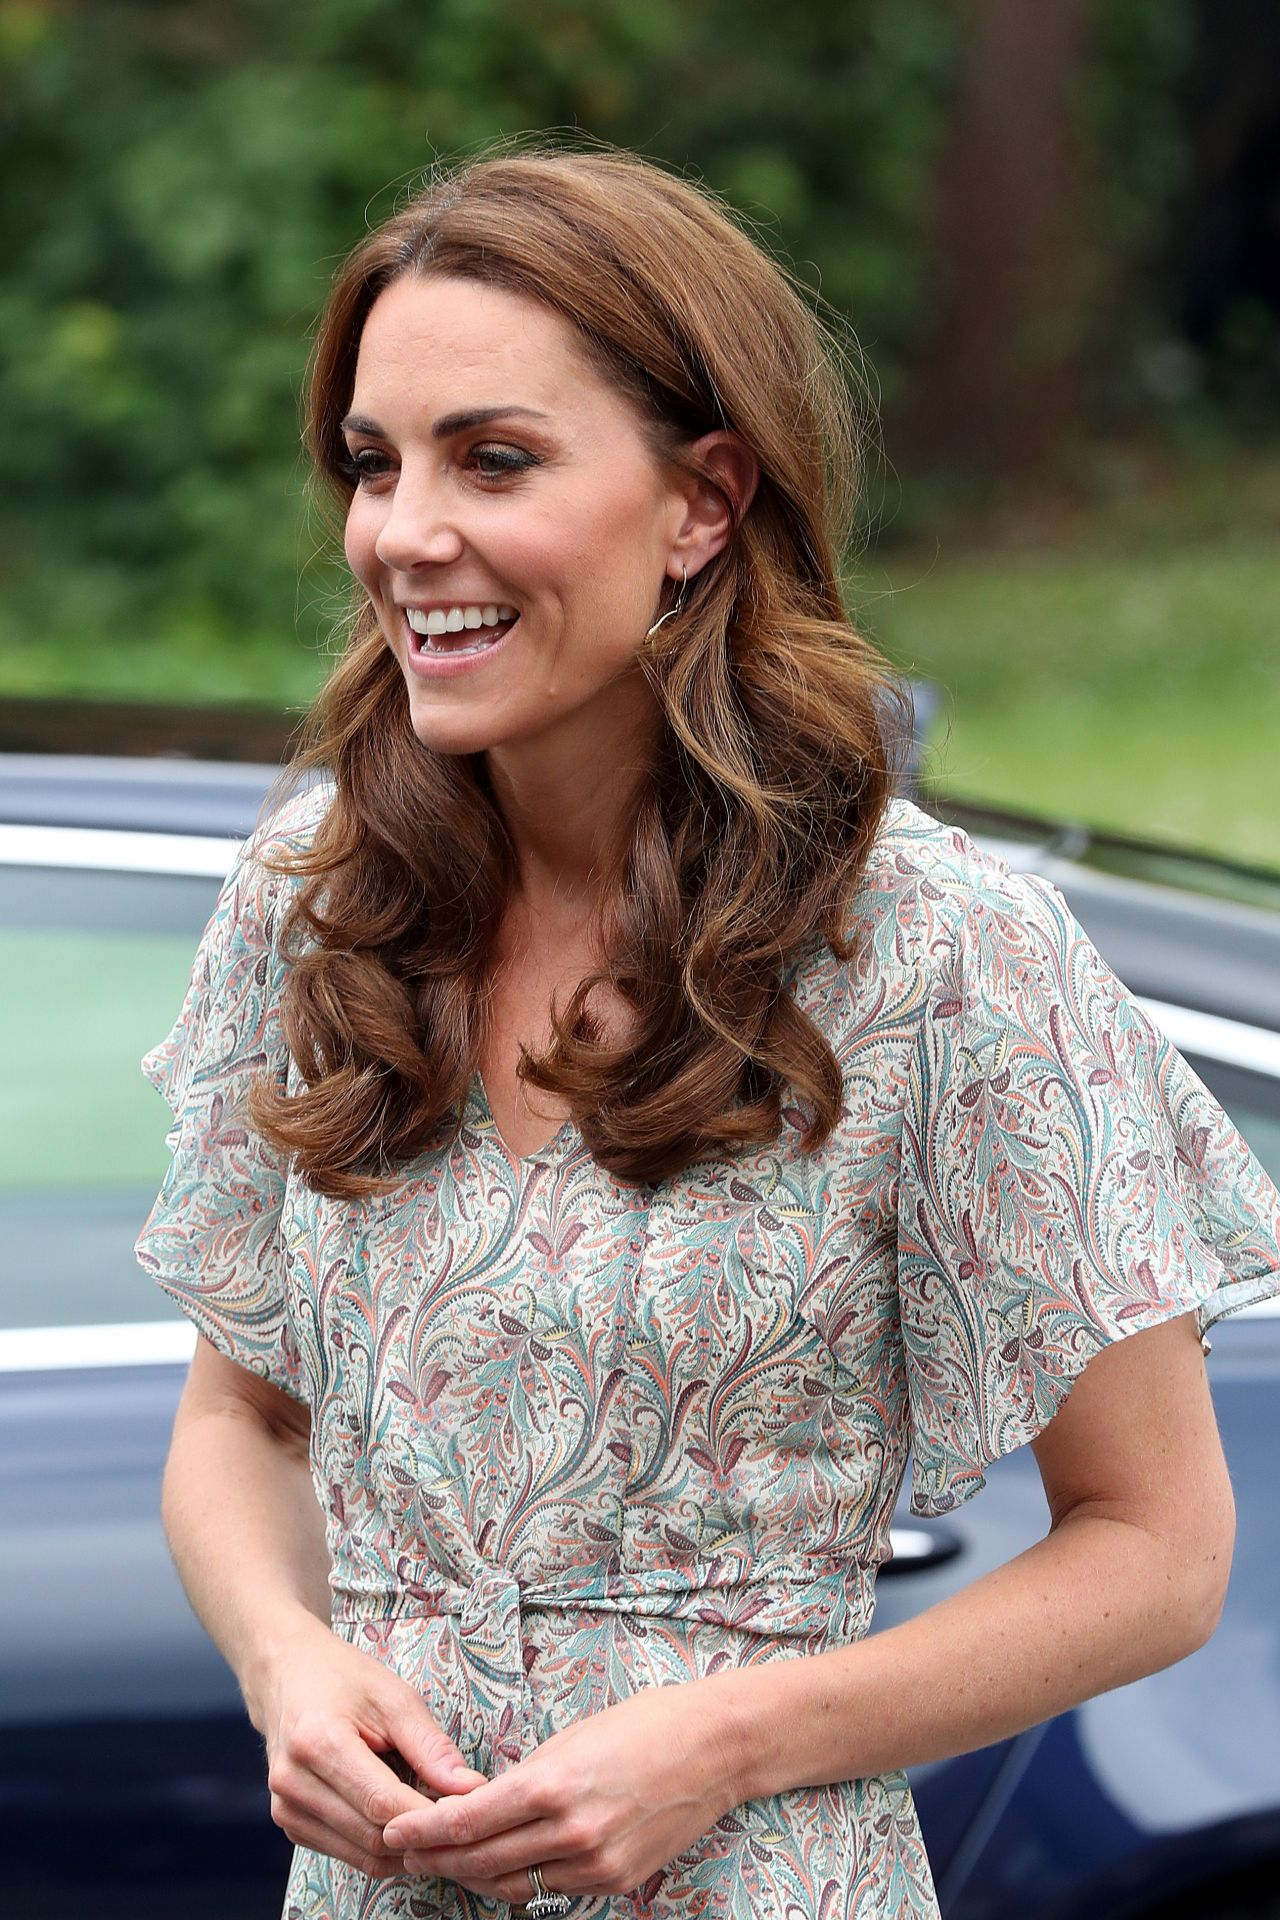 Kate Middleton Joins A Photography Workshop For Action